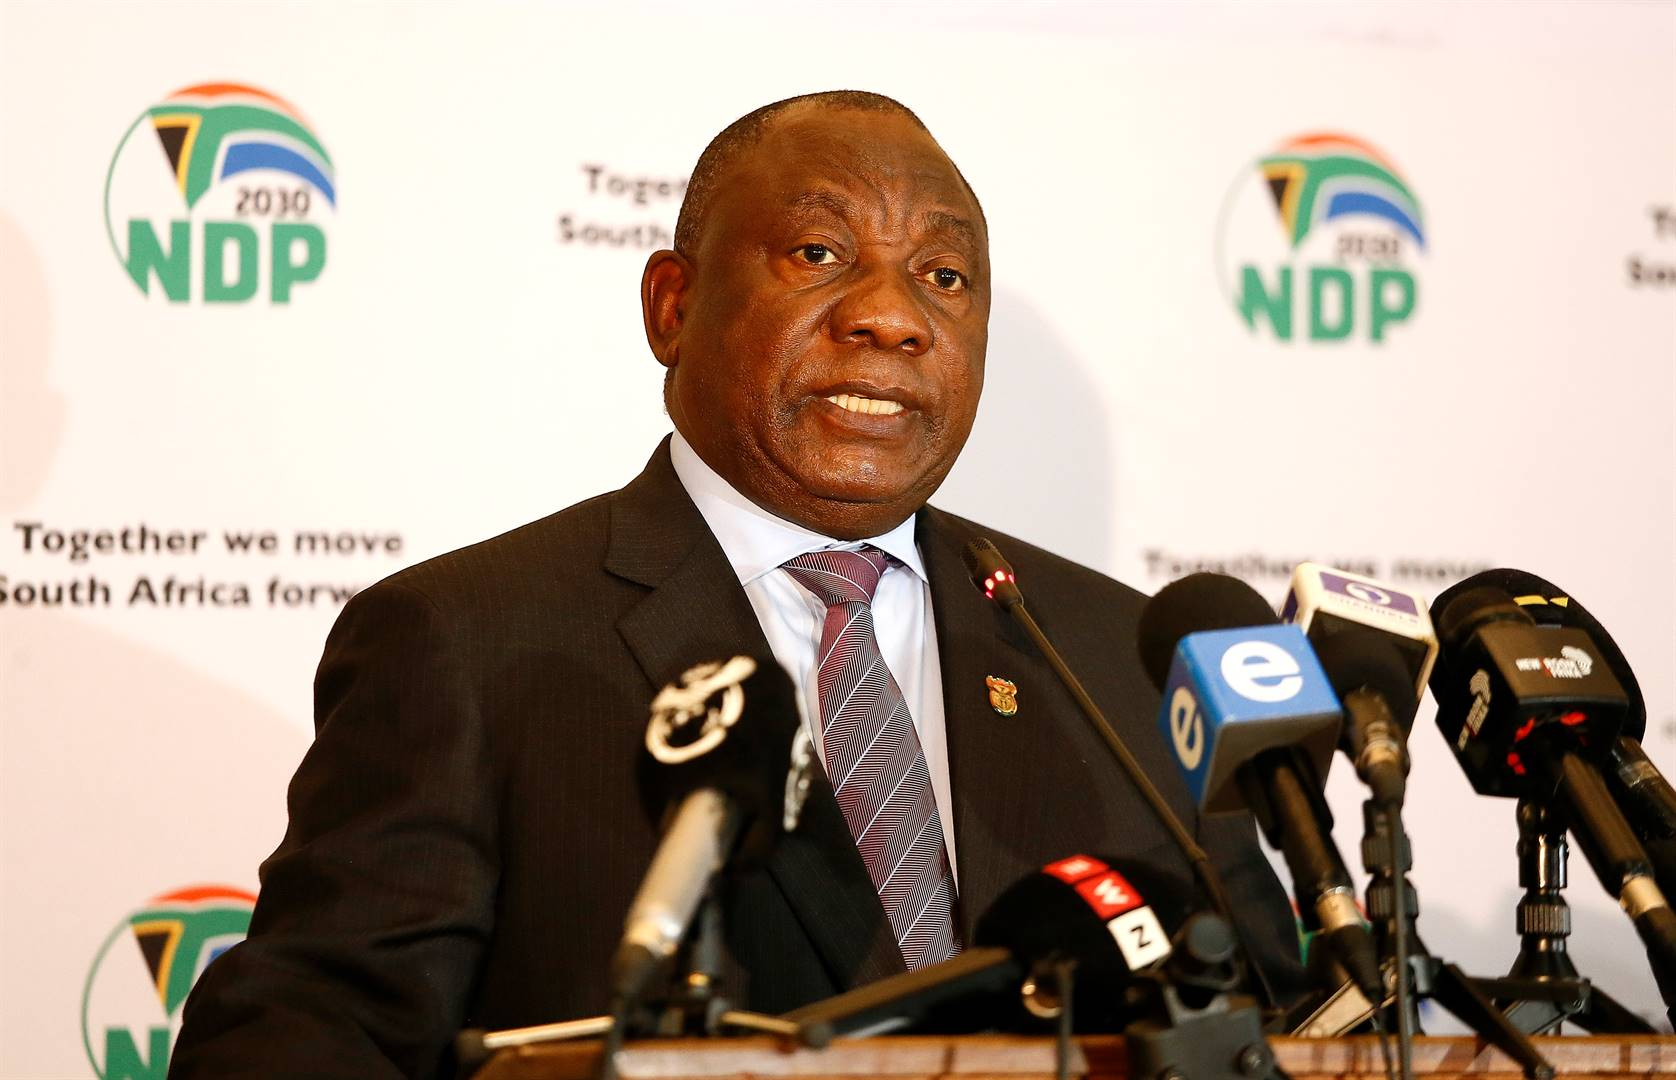 President Cyril Ramaphosa. (Photo: Getty Images)